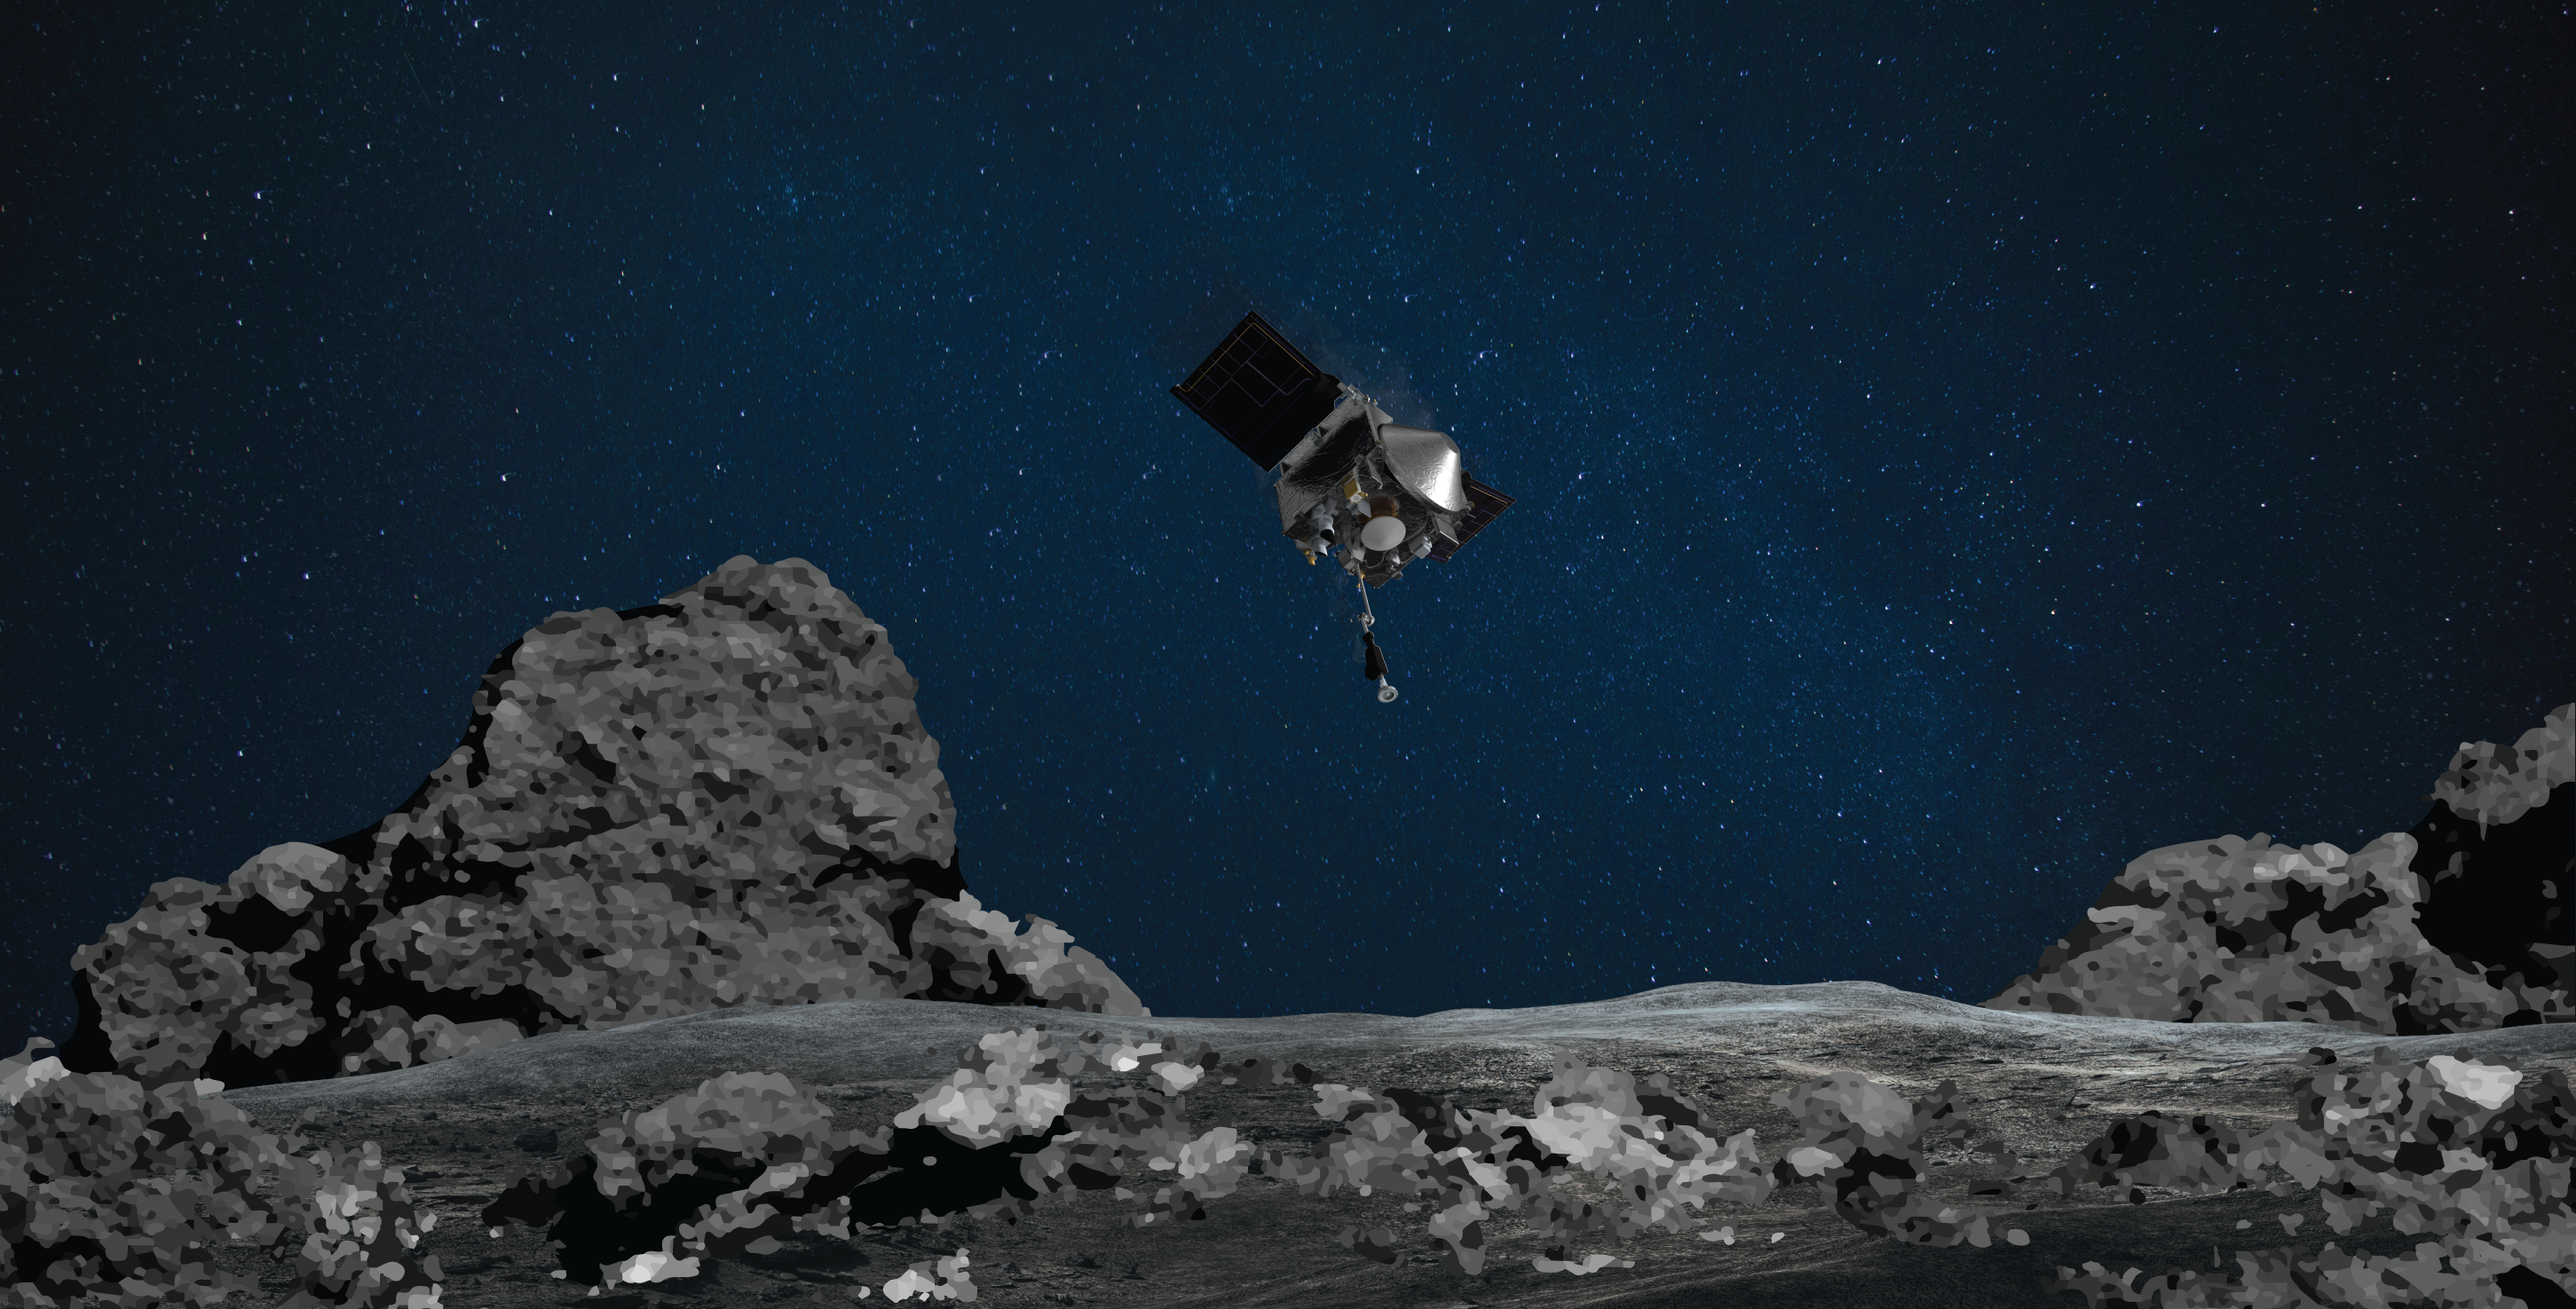 NASA's OSIRIS-REx Spacecraft Set for Sampling Attempt at Asteroid Bennu Oct. 20: Watch Live